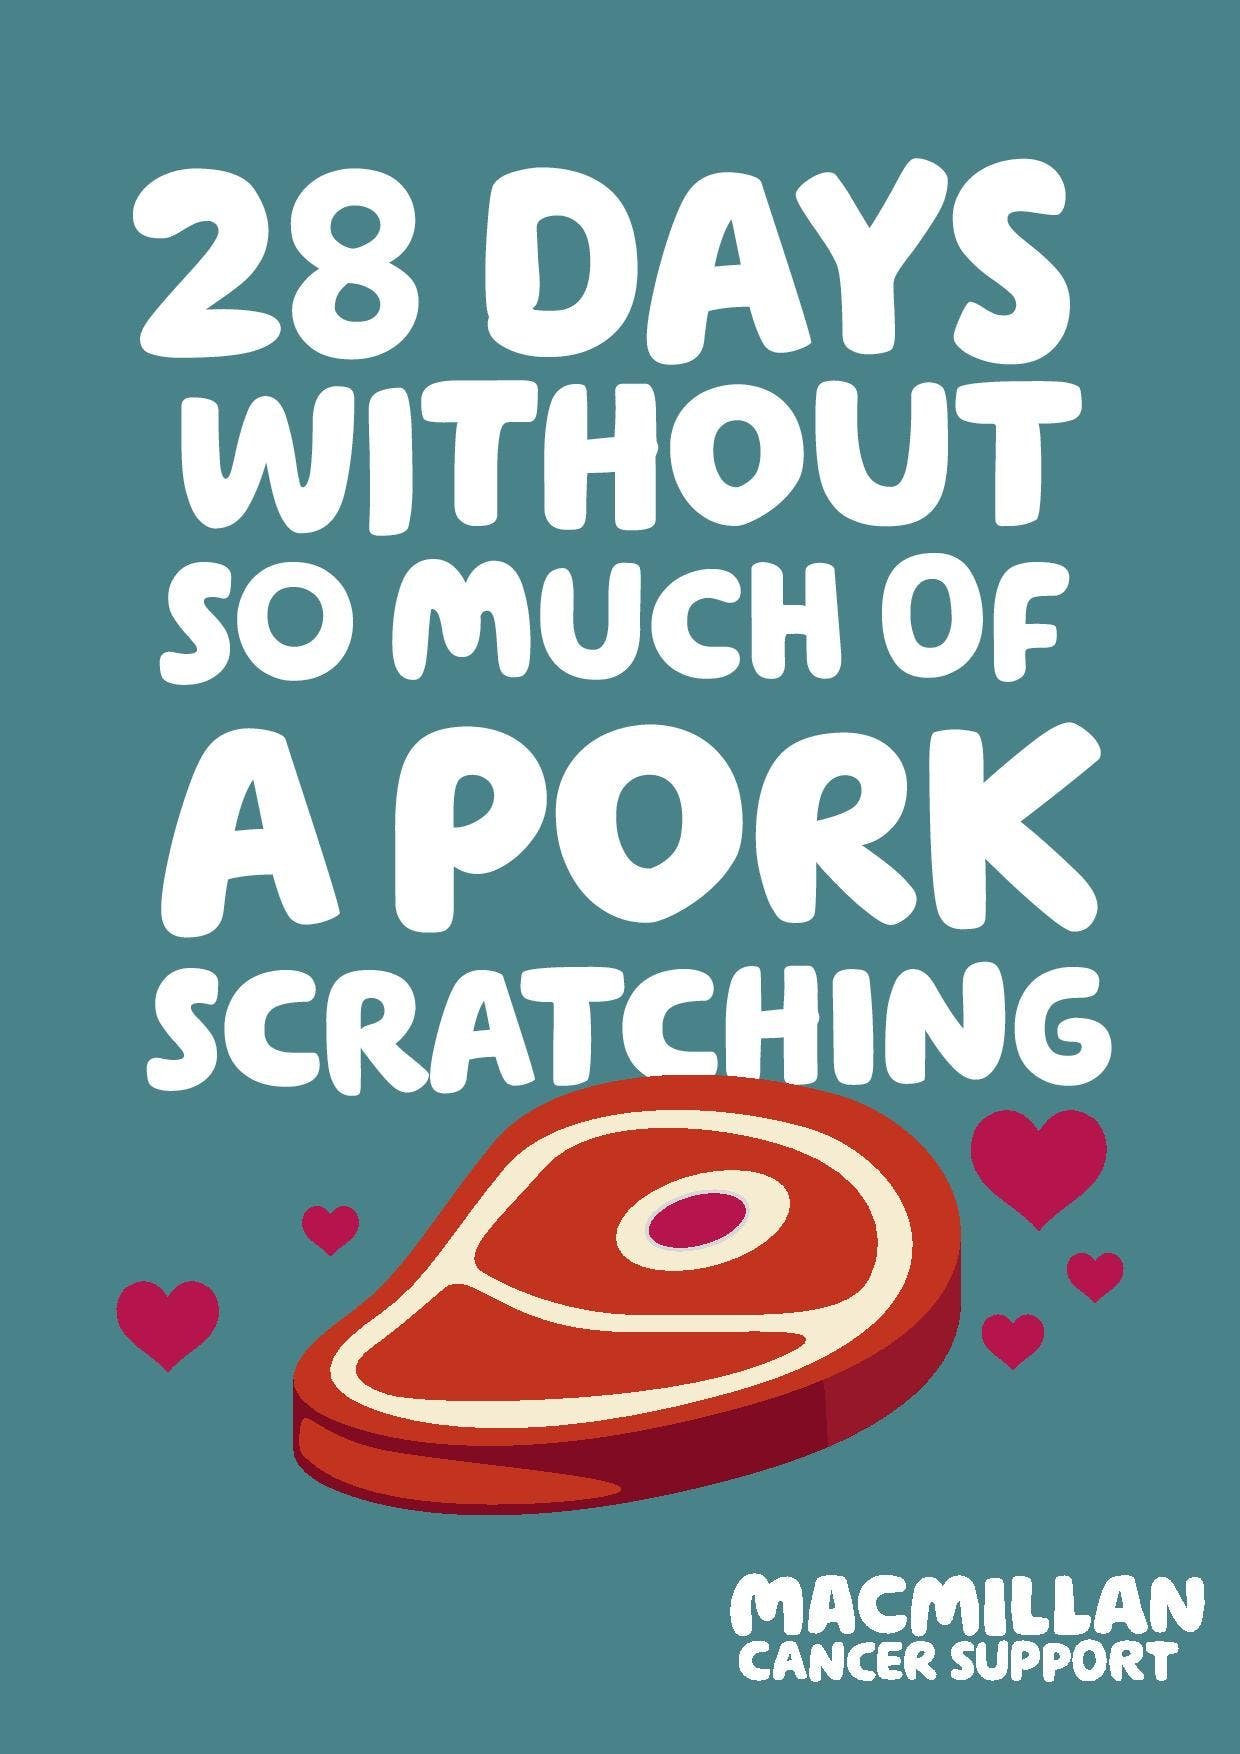 TEAL BACKGROUND text: 28 days without so much of a pork scratching